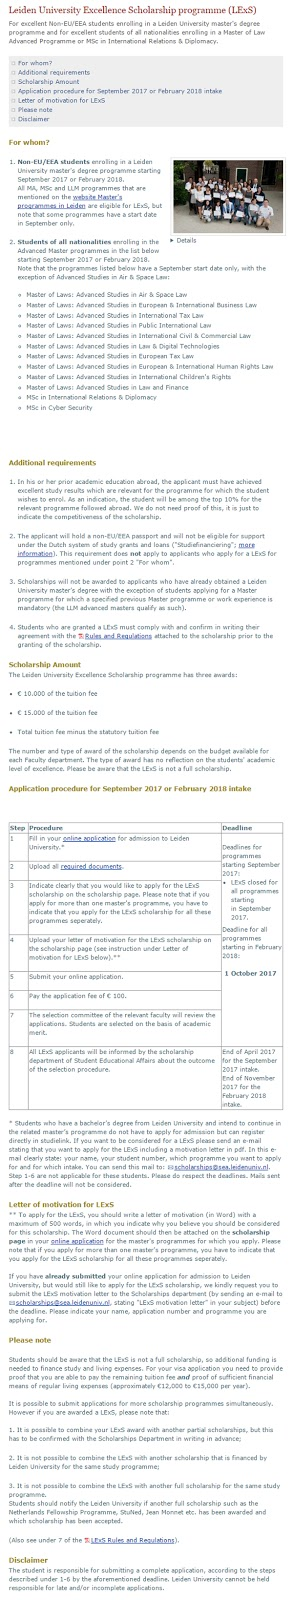 Leiden University Excellence Scholarships for International Students in Netherlander Years 2017 to 2018